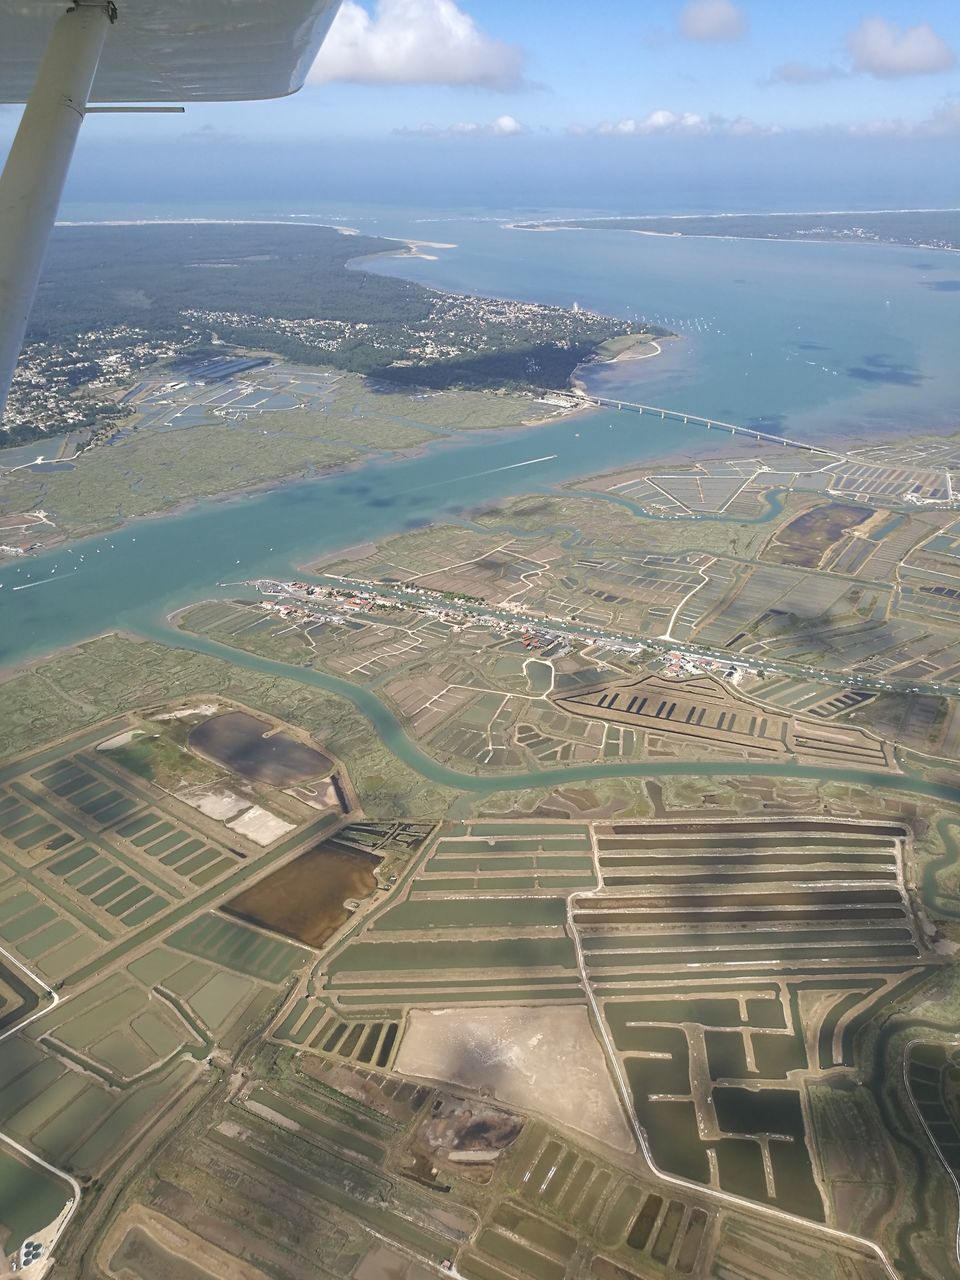 scenics, landscape, beauty in nature, aerial view, nature, tranquil scene, agriculture, tranquility, day, sea, sky, no people, field, outdoors, patchwork landscape, high angle view, rural scene, water, cloud - sky, horizon over water, airplane